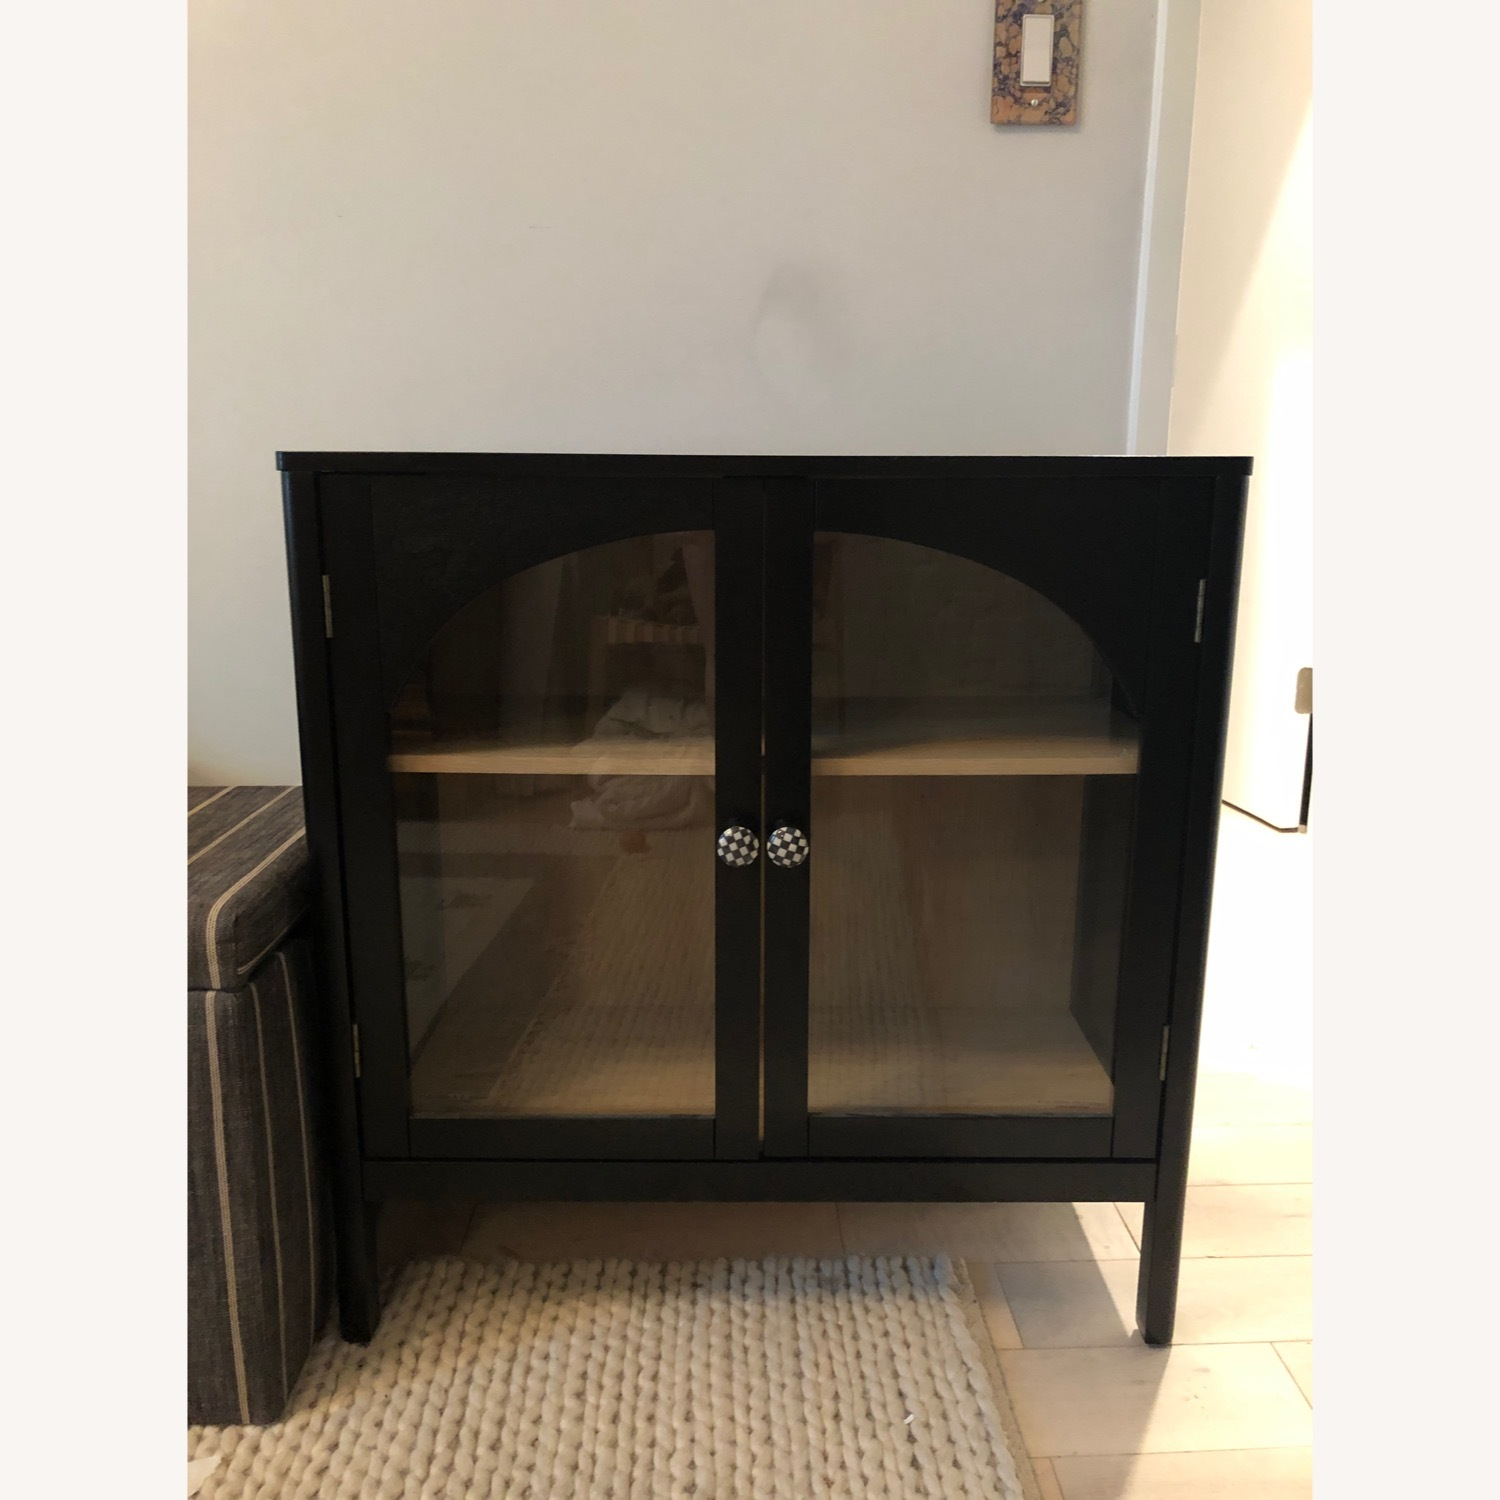 Target Arched Glass & Wood Cabinet w/ Custom Knobs - image-3